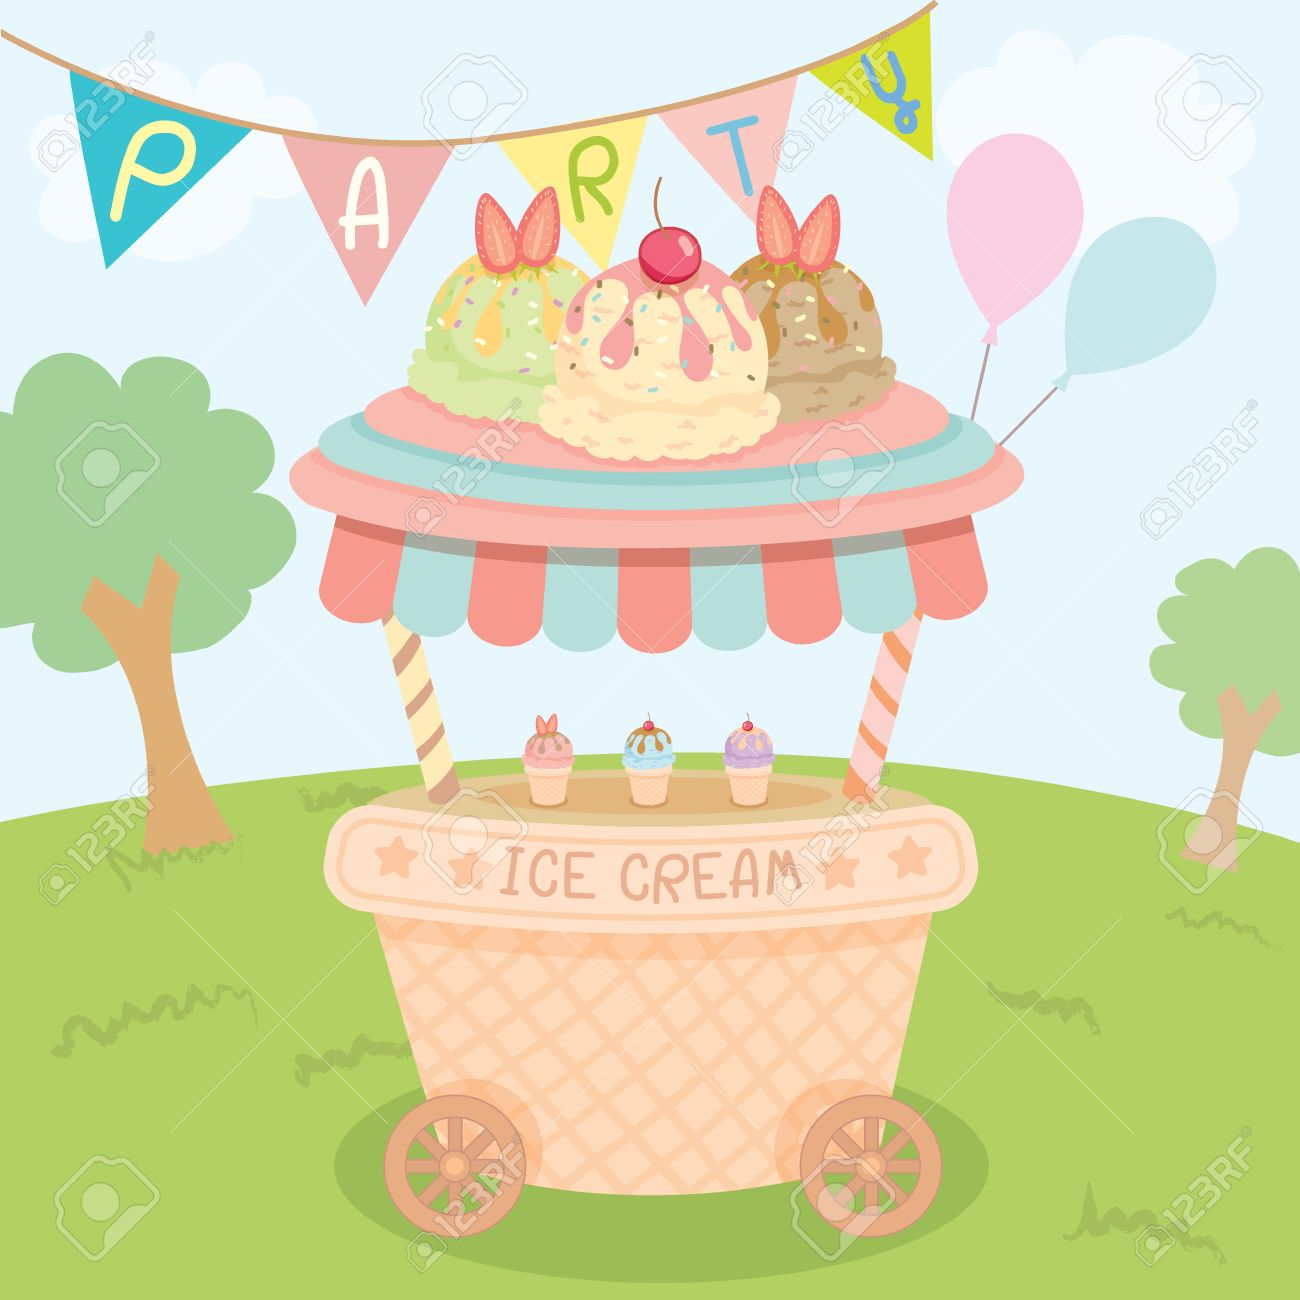 Tea party background royalty free stock photo image 28839215 - Jpg 1300x1300 Cute Party Background